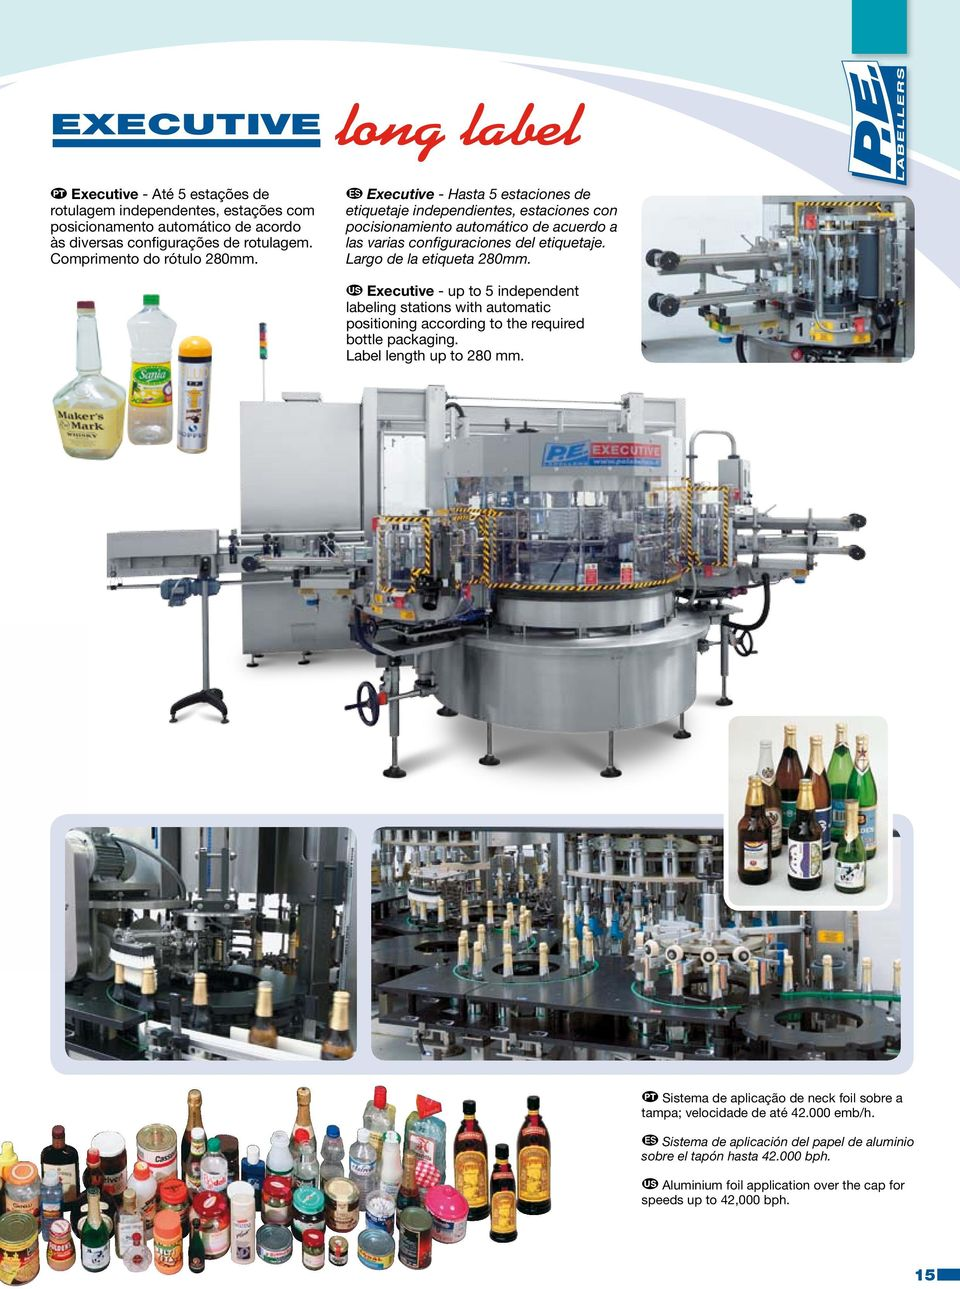 Largo de la etiqueta 280mm. Executive - up to 5 independent labeling stations with automatic positioning according to the required bottle packaging. Label length up to 280 mm.